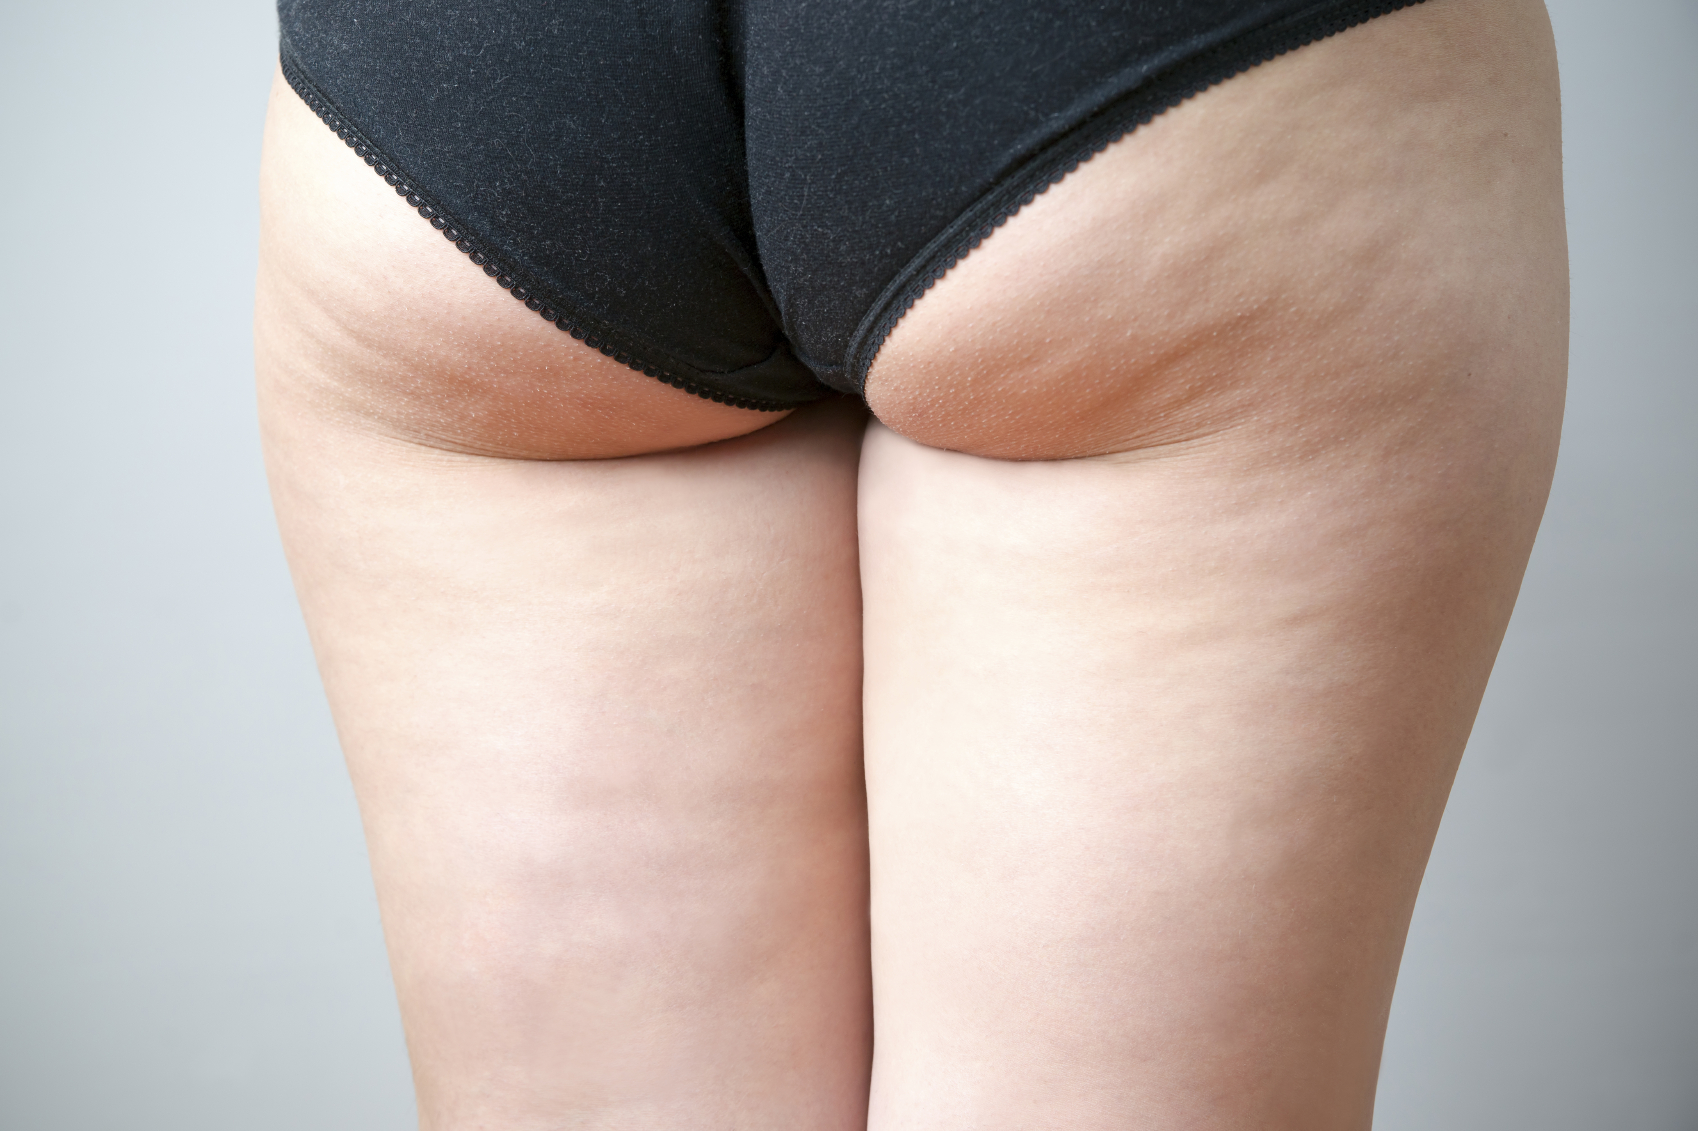 Three Types Of Buttock Enhancements And Contouring Surgeries